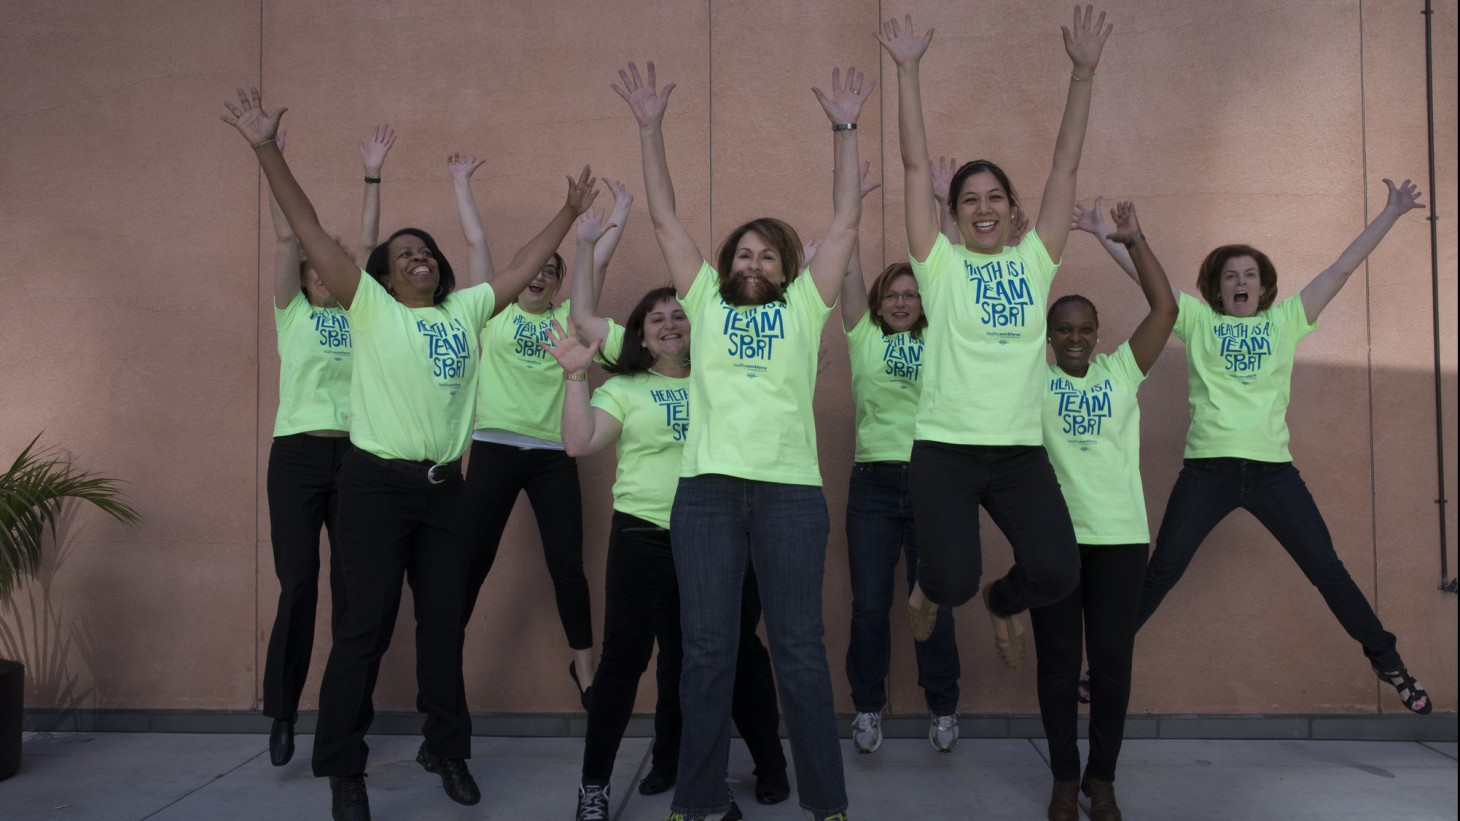 Squad of women in bright green shirts jumping up in the air